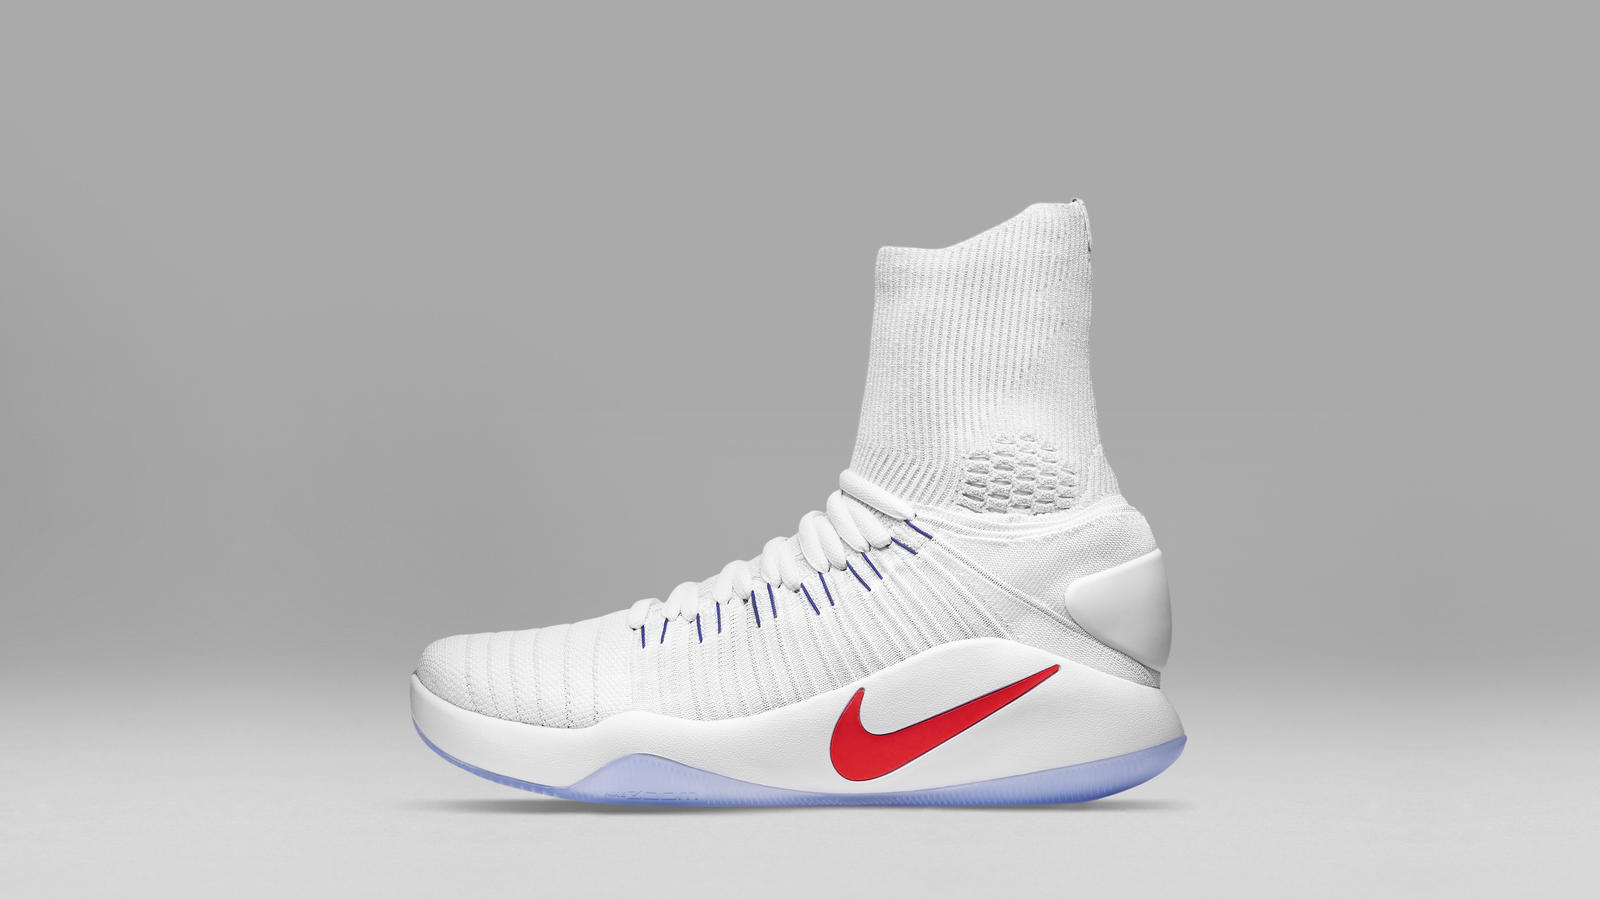 e63d7d63437d Nike Hyperdunk 2016 Exemplifies Performance Innovation - Nike News